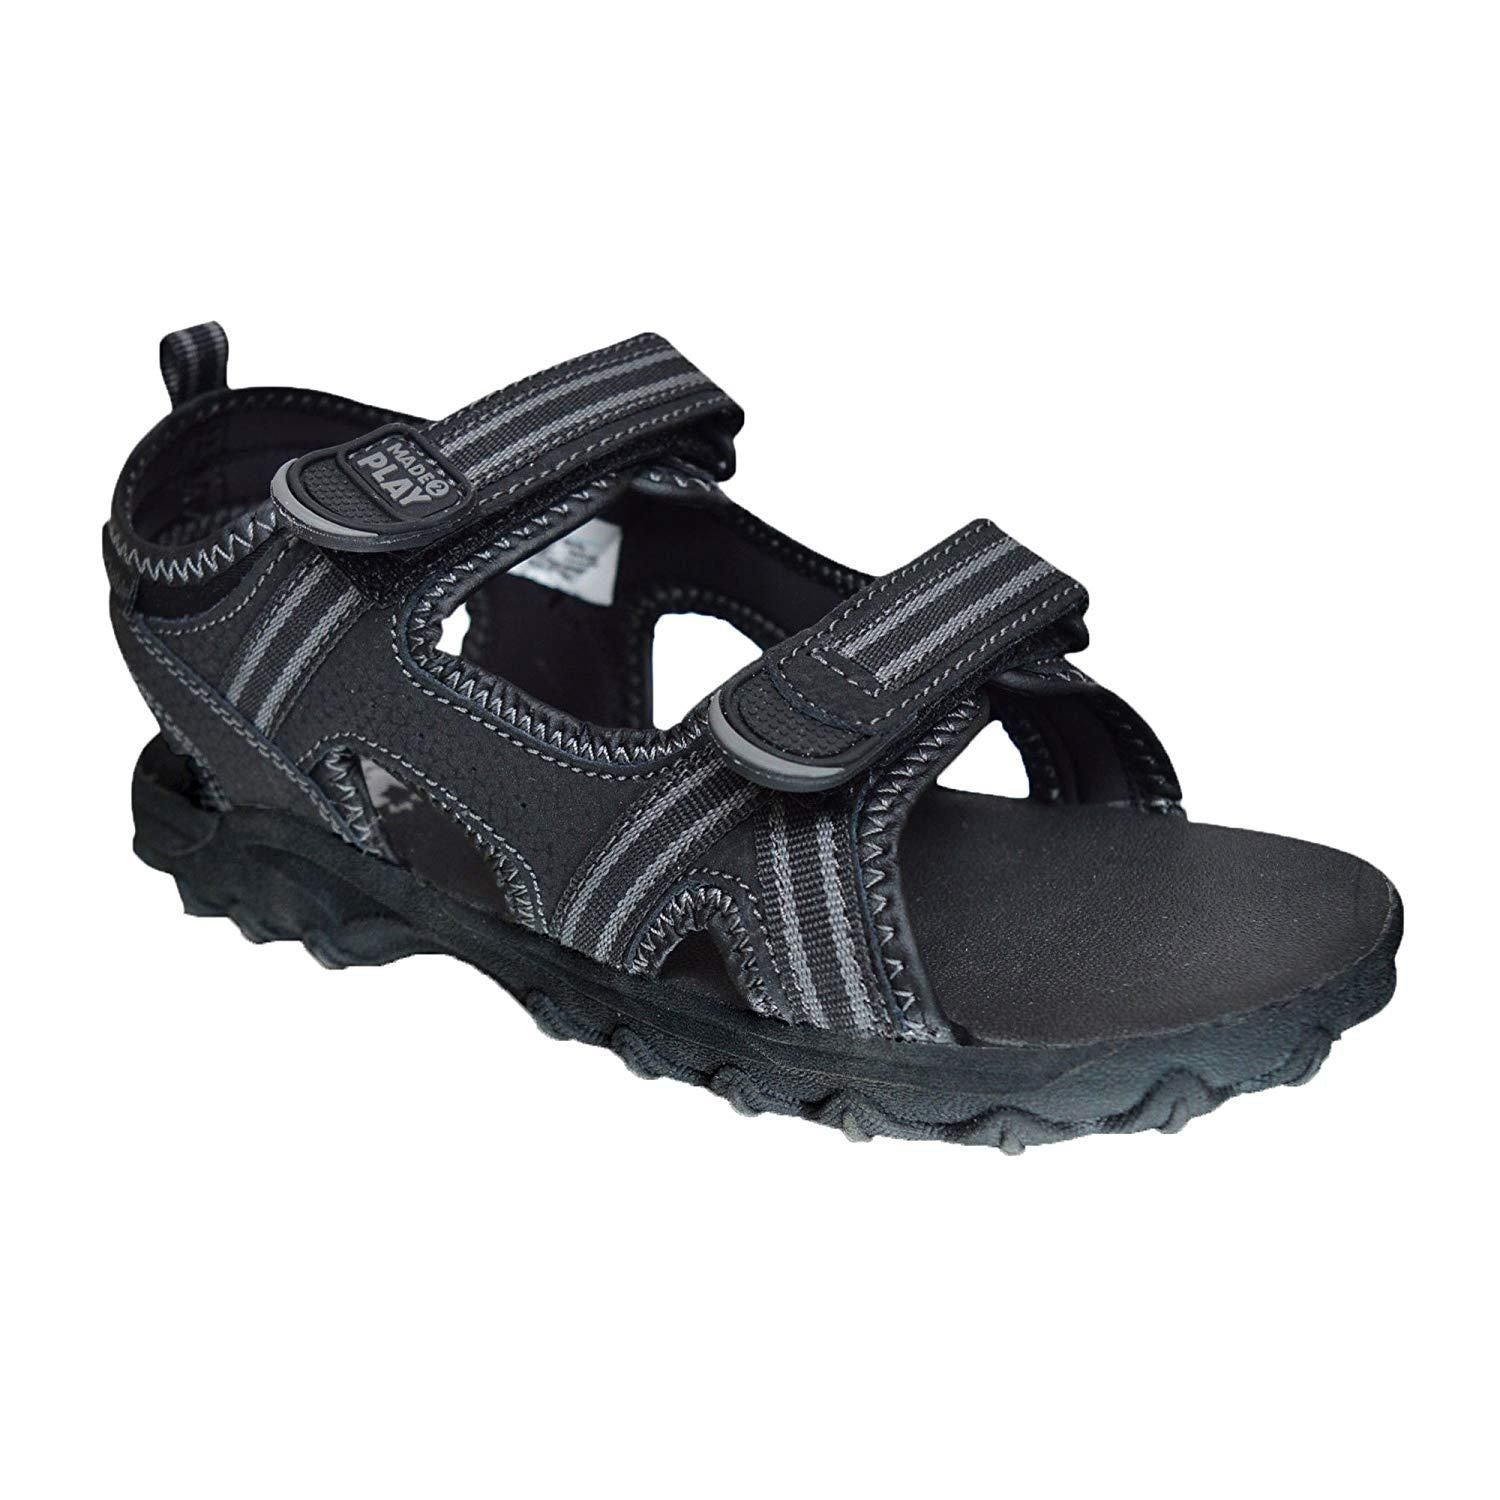 dfac104a890b4 Xelay Boys Leather Black Sports and Outdoor Hook and Loop Summer Sandals  Size Toddlers Child